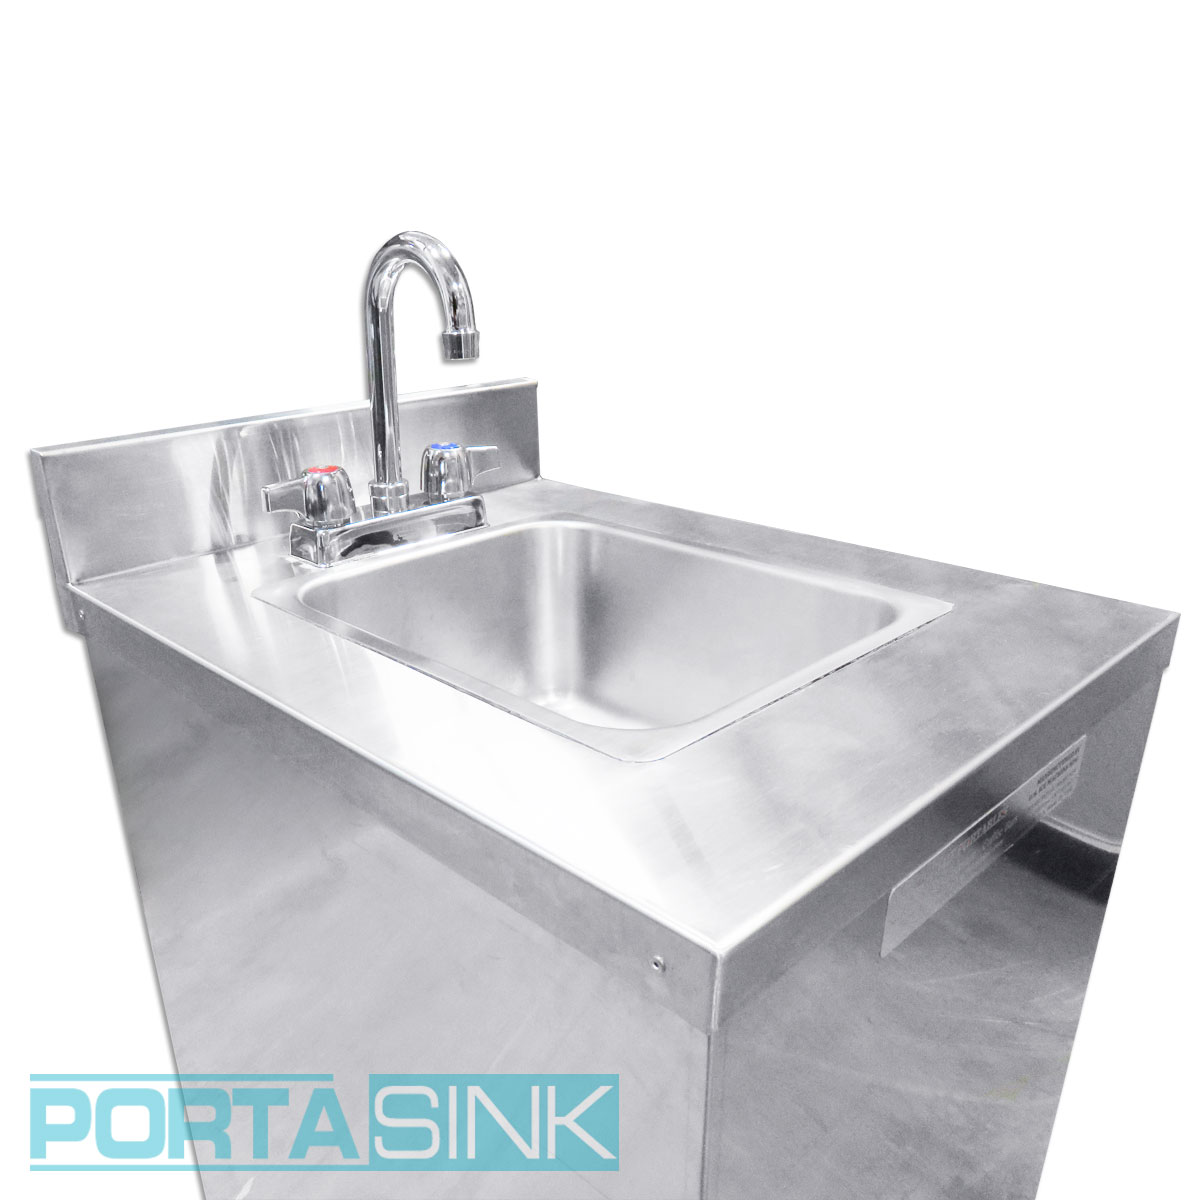 Portable Micro Hand Sink Portable Sink Portable Sinks